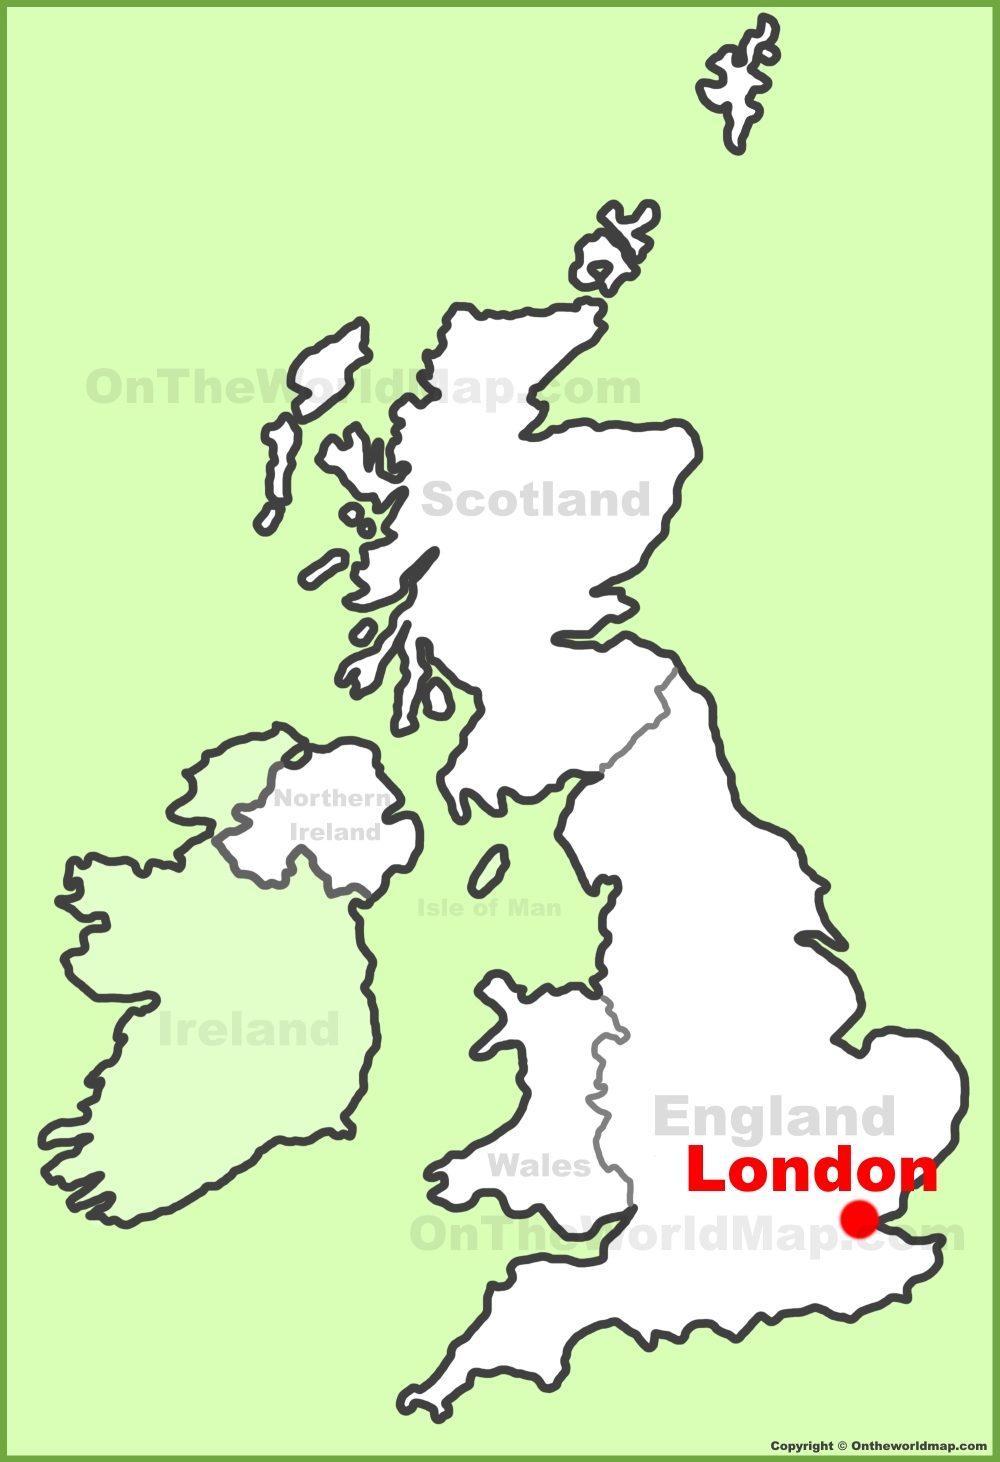 London Maps | UK | Maps of London